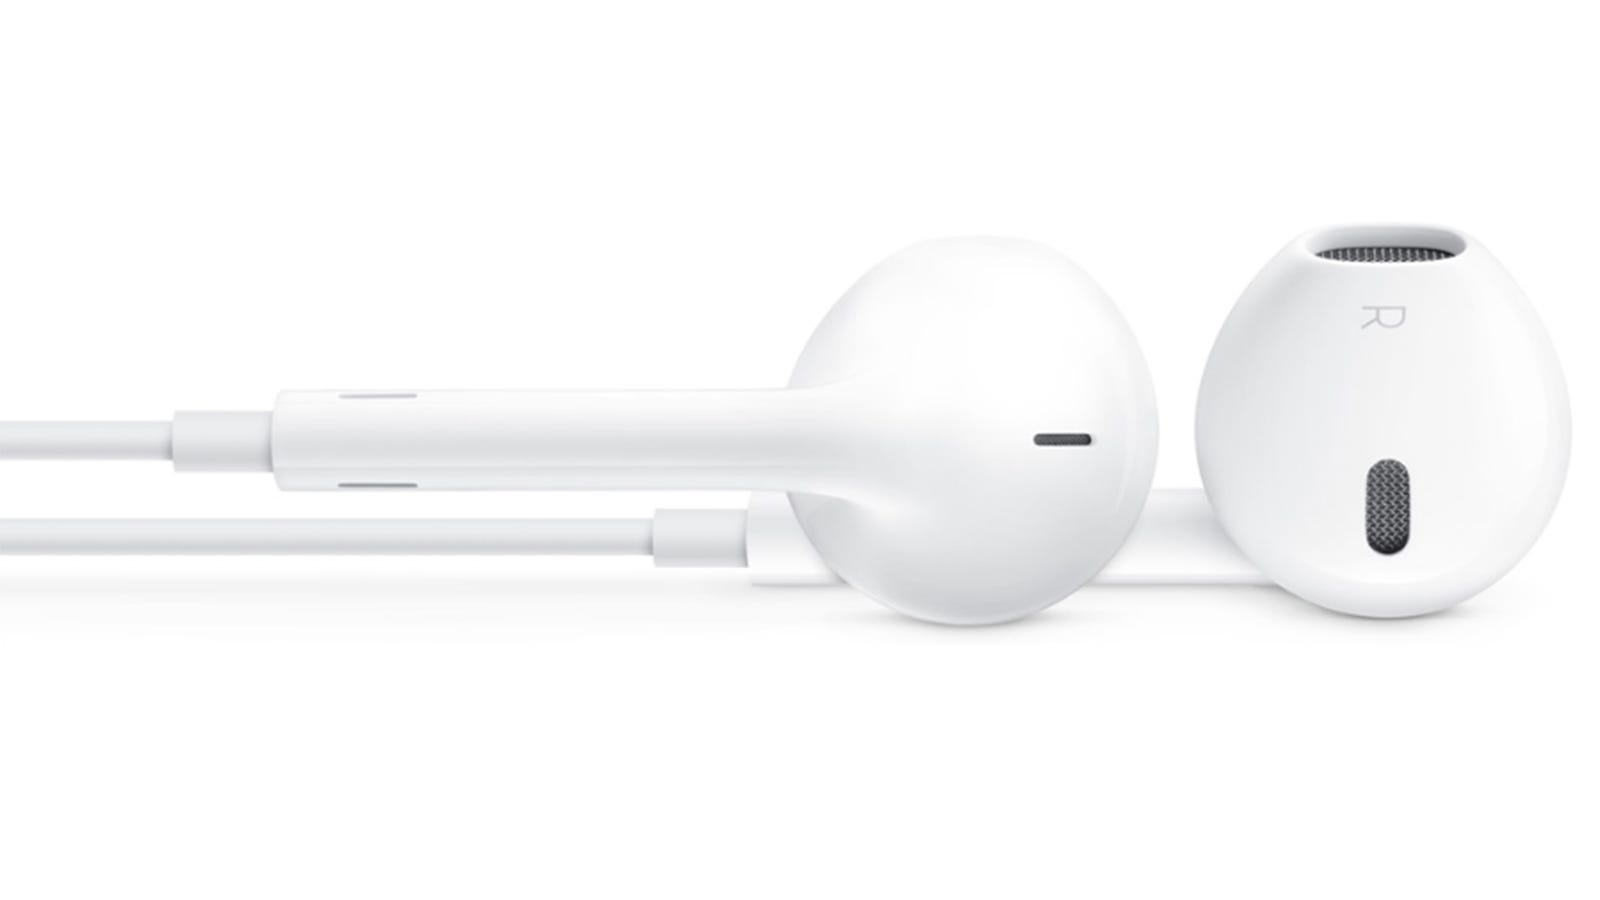 ggmm earbuds c700 - Apple's Rolling Out New Headphones That Might Not Be Crap